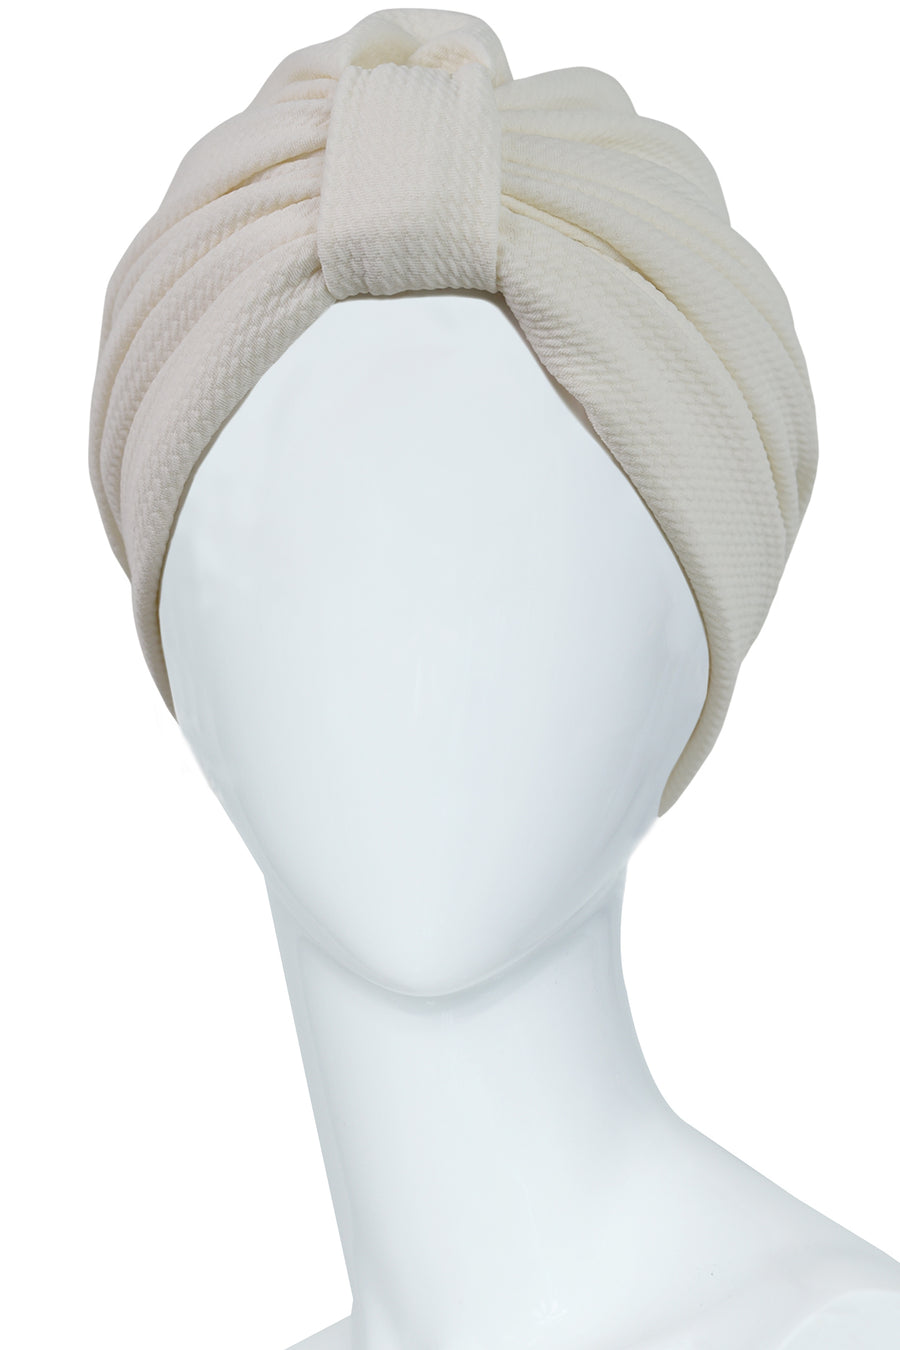 Havre Caumartin - NEW TURBAN !